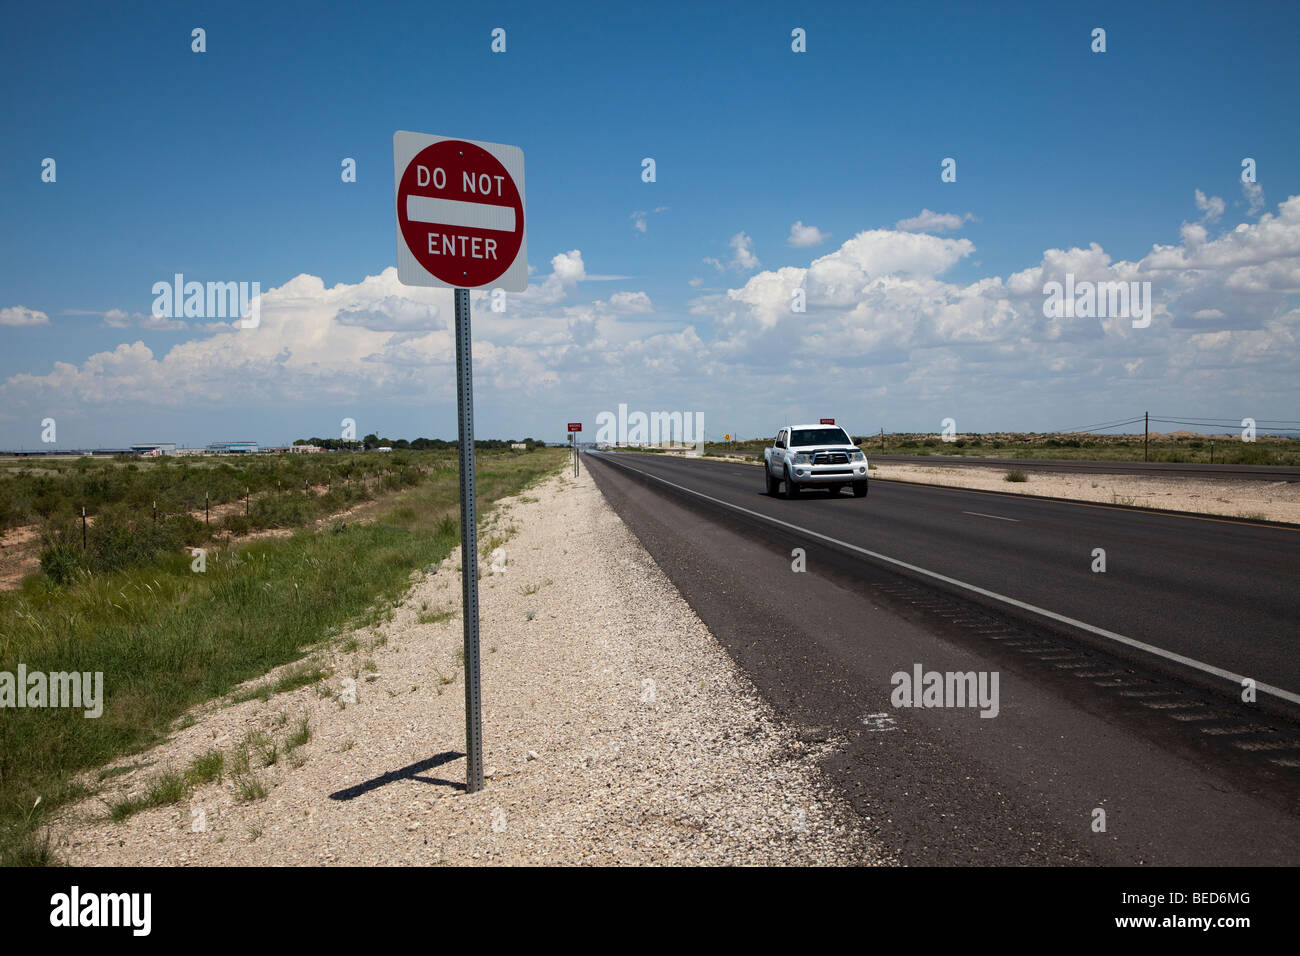 Do not enter wrong way sign on divided highway New Mexico USA - Stock Image